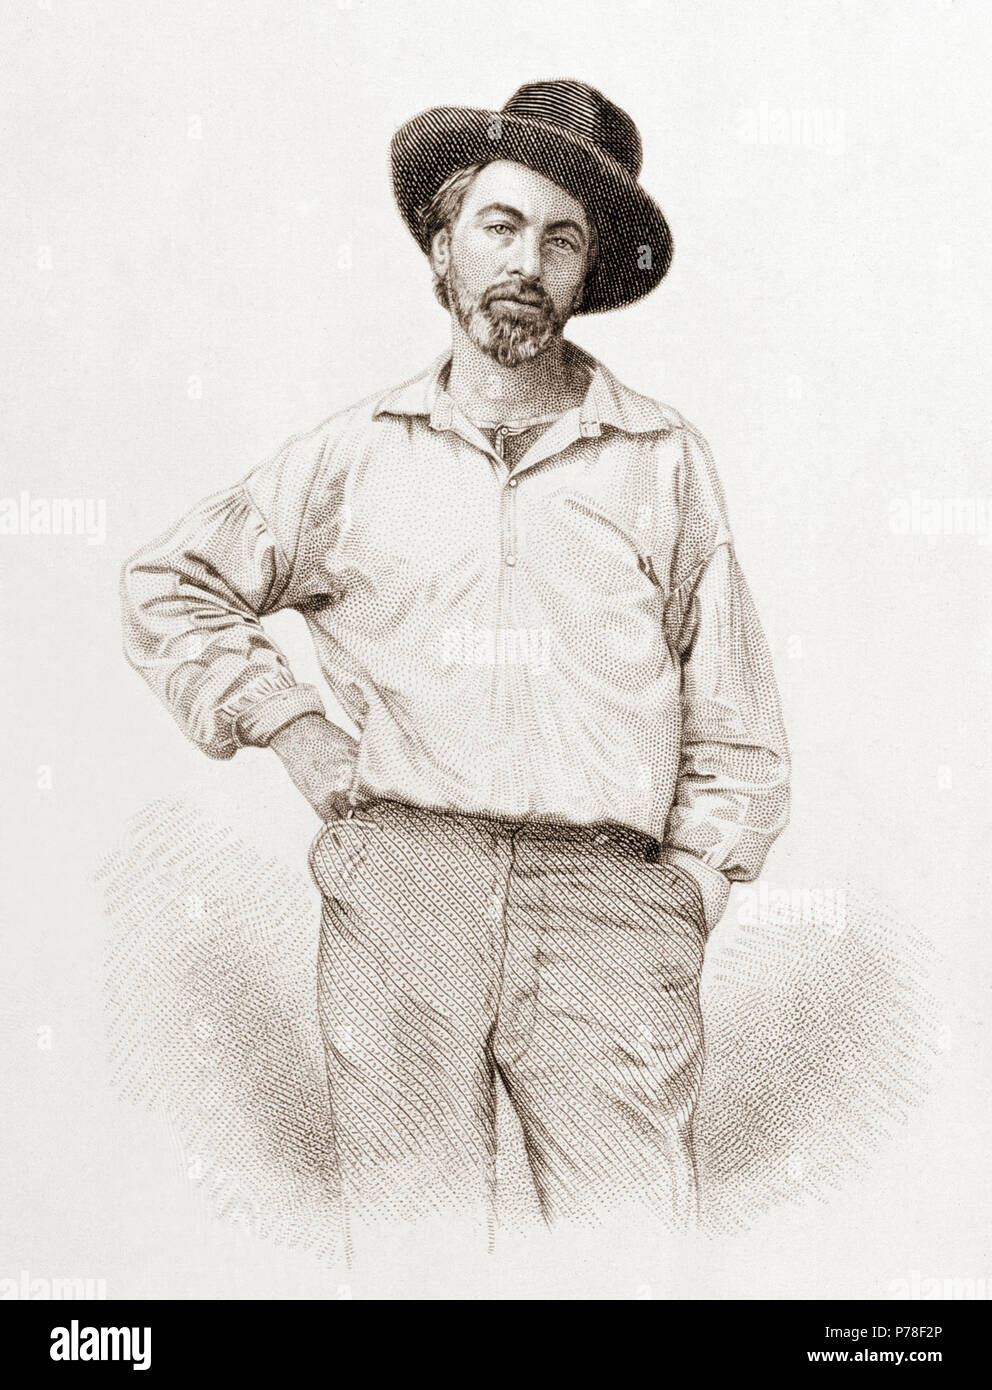 Walt Whitman (1819-1892), age 37, frontispiece to Leaves of grass, Fulton St., Brooklyn, N.Y., 1855, steel engraving by Samuel Hollyer from a lost daguerreotype by Gabriel Harrison. . July 1854 67 Walt Whitman, steel engraving, July 1854 - Stock Image